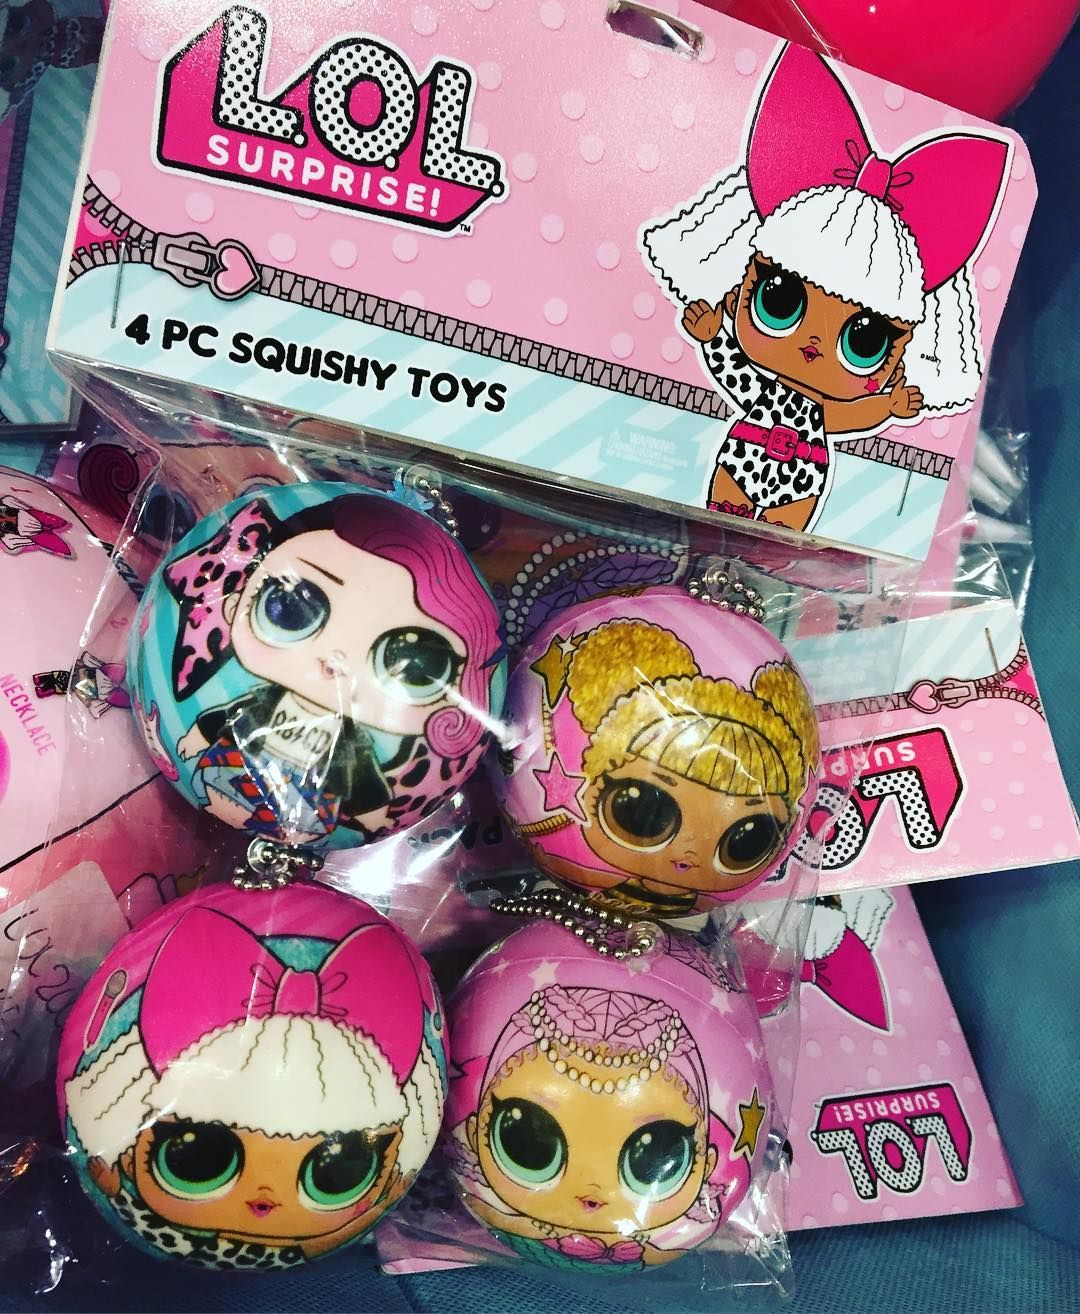 Lolsurprise Squishies Coming To Major Retail Near You Partyfavors Bagfiller Toys Lol Cheerleader Birthday Party Easy Handmade Gifts Valentines Day Party